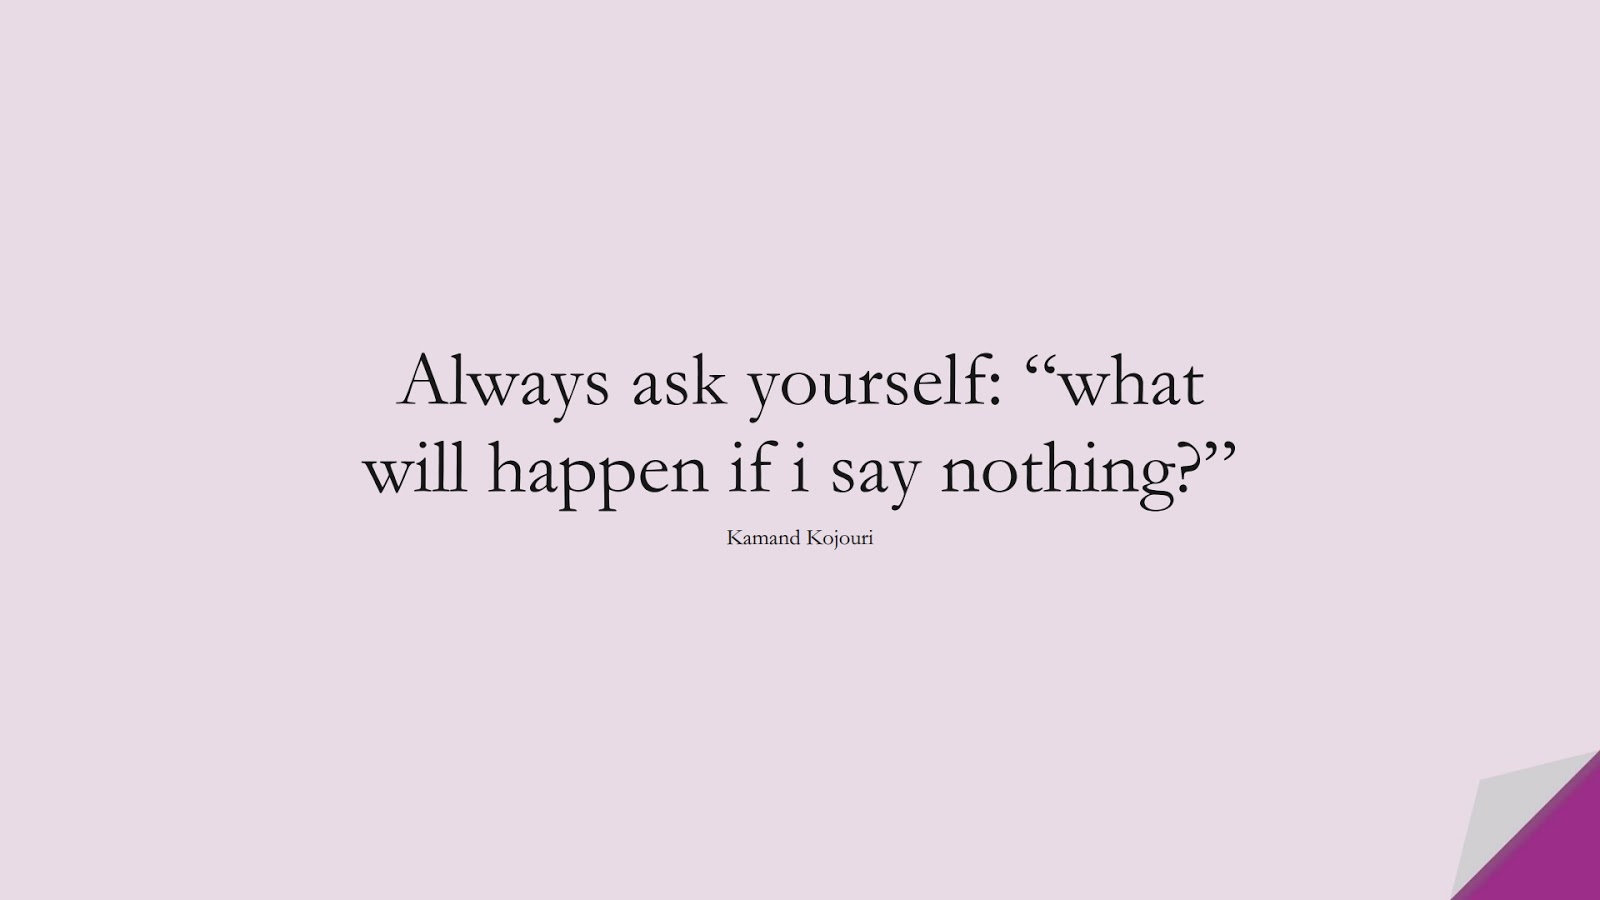 """Always ask yourself: """"what will happen if i say nothing?"""" (Kamand Kojouri);  #CalmQuotes"""